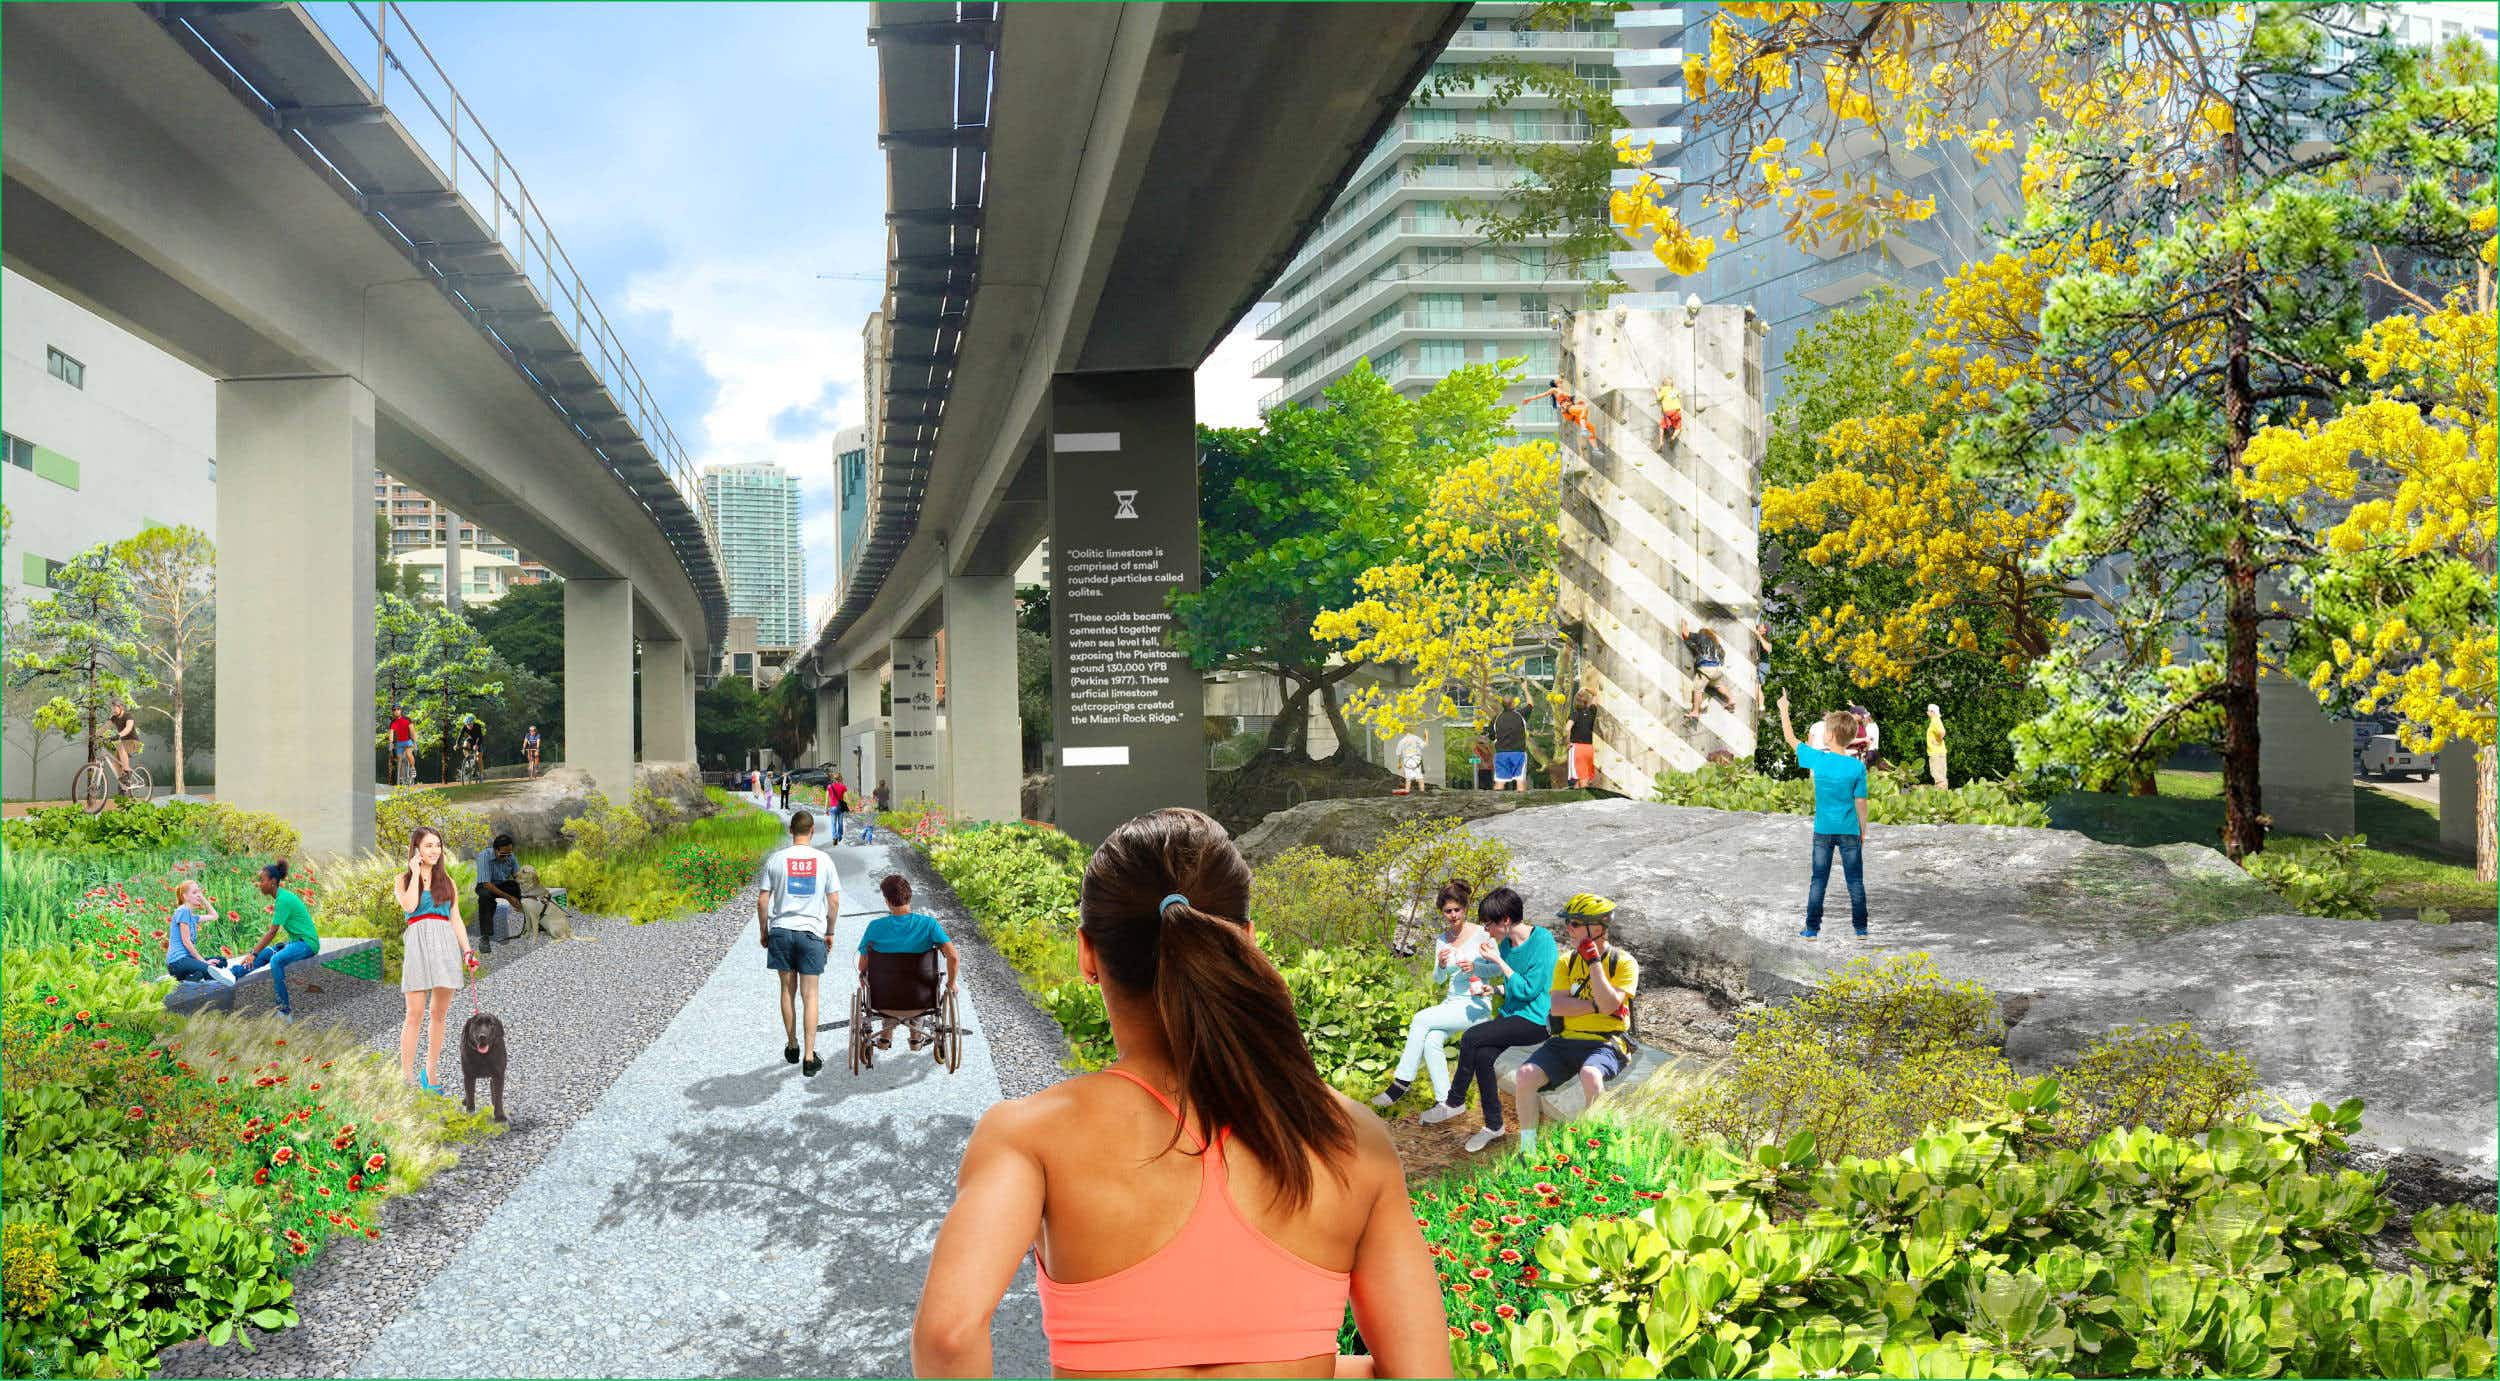 Miami is developing a ten-mile urban park just like New York's popular High Line